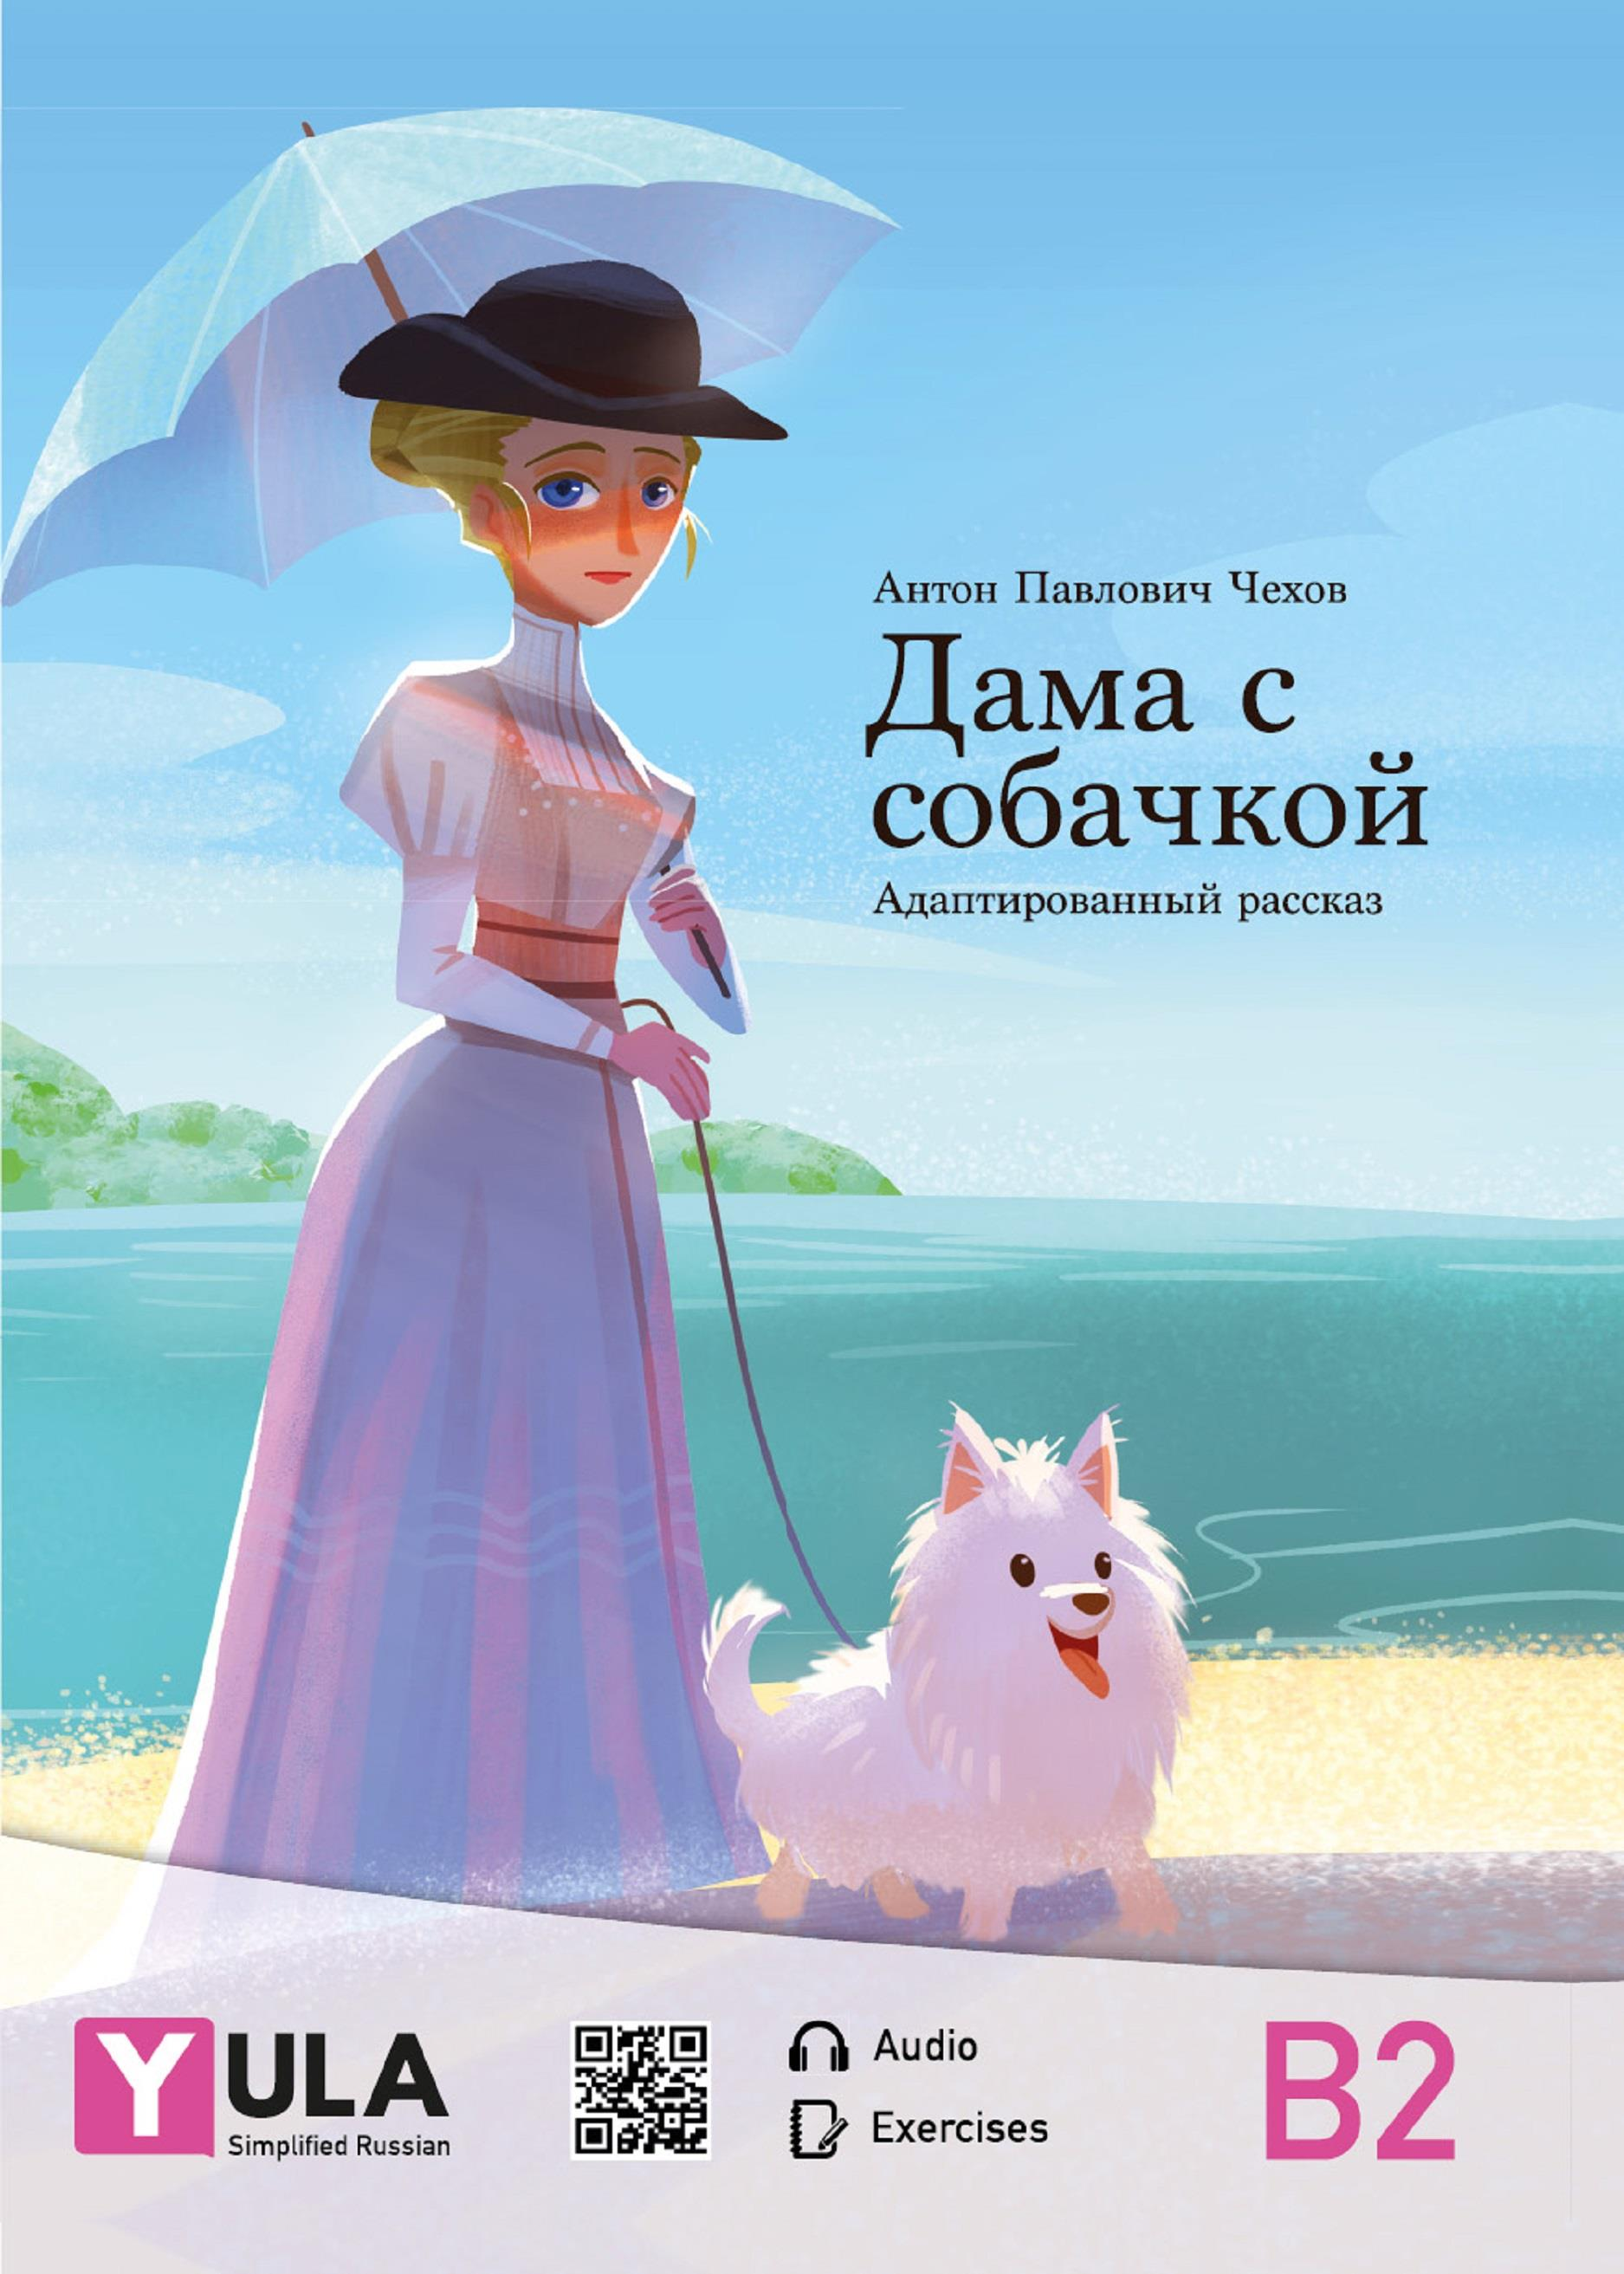 Lady with the Dog - simplified Russian